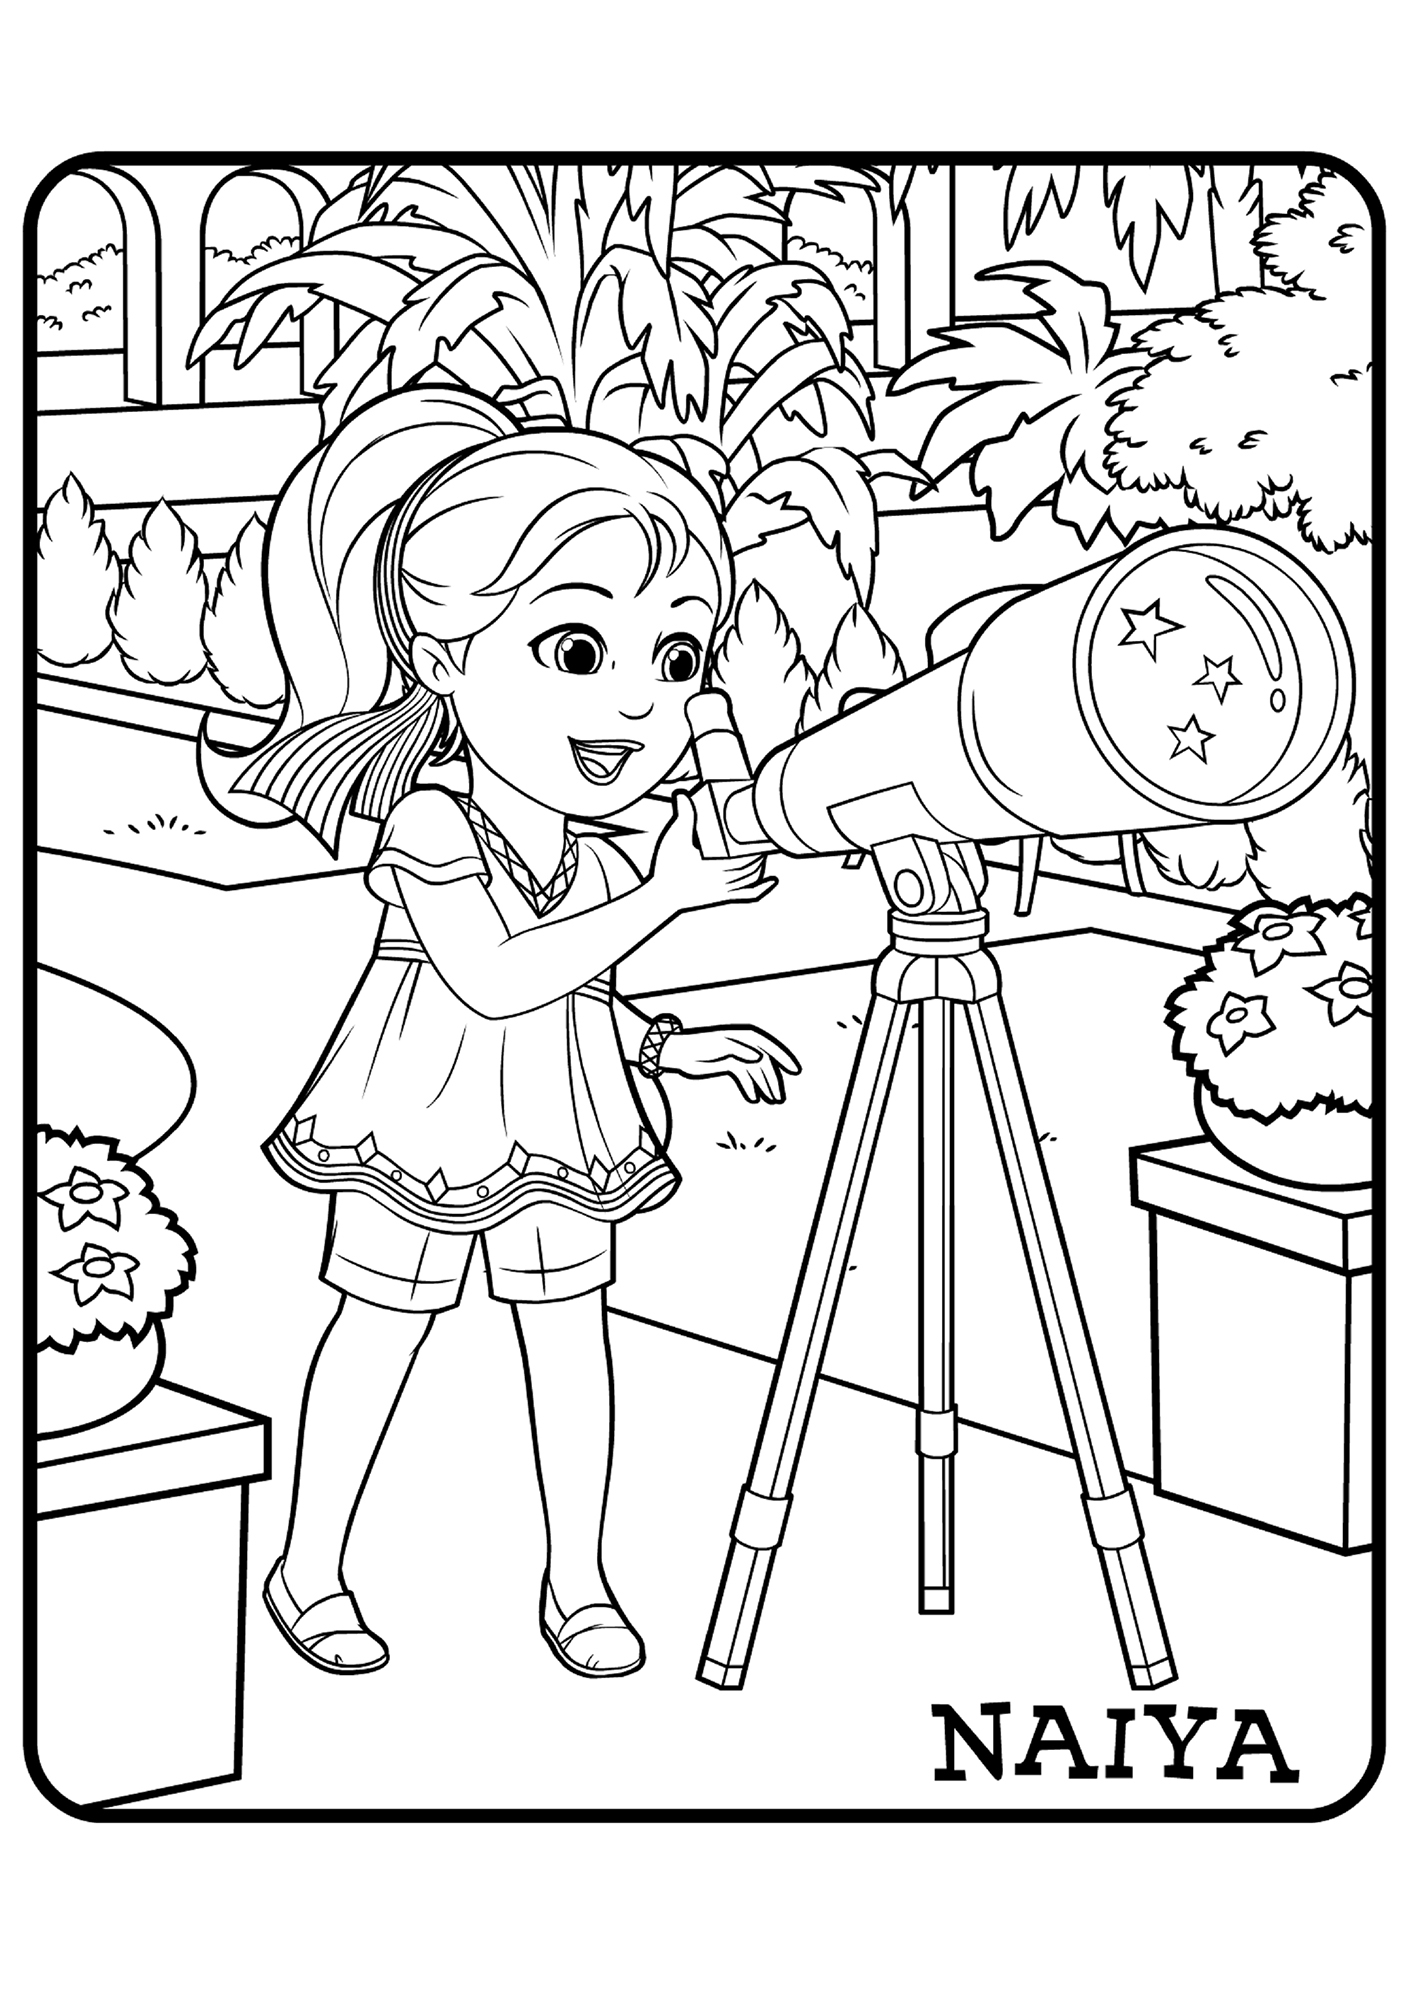 coloring pages dora and friends dora and friends coloring pages to download and print for free pages coloring dora friends and